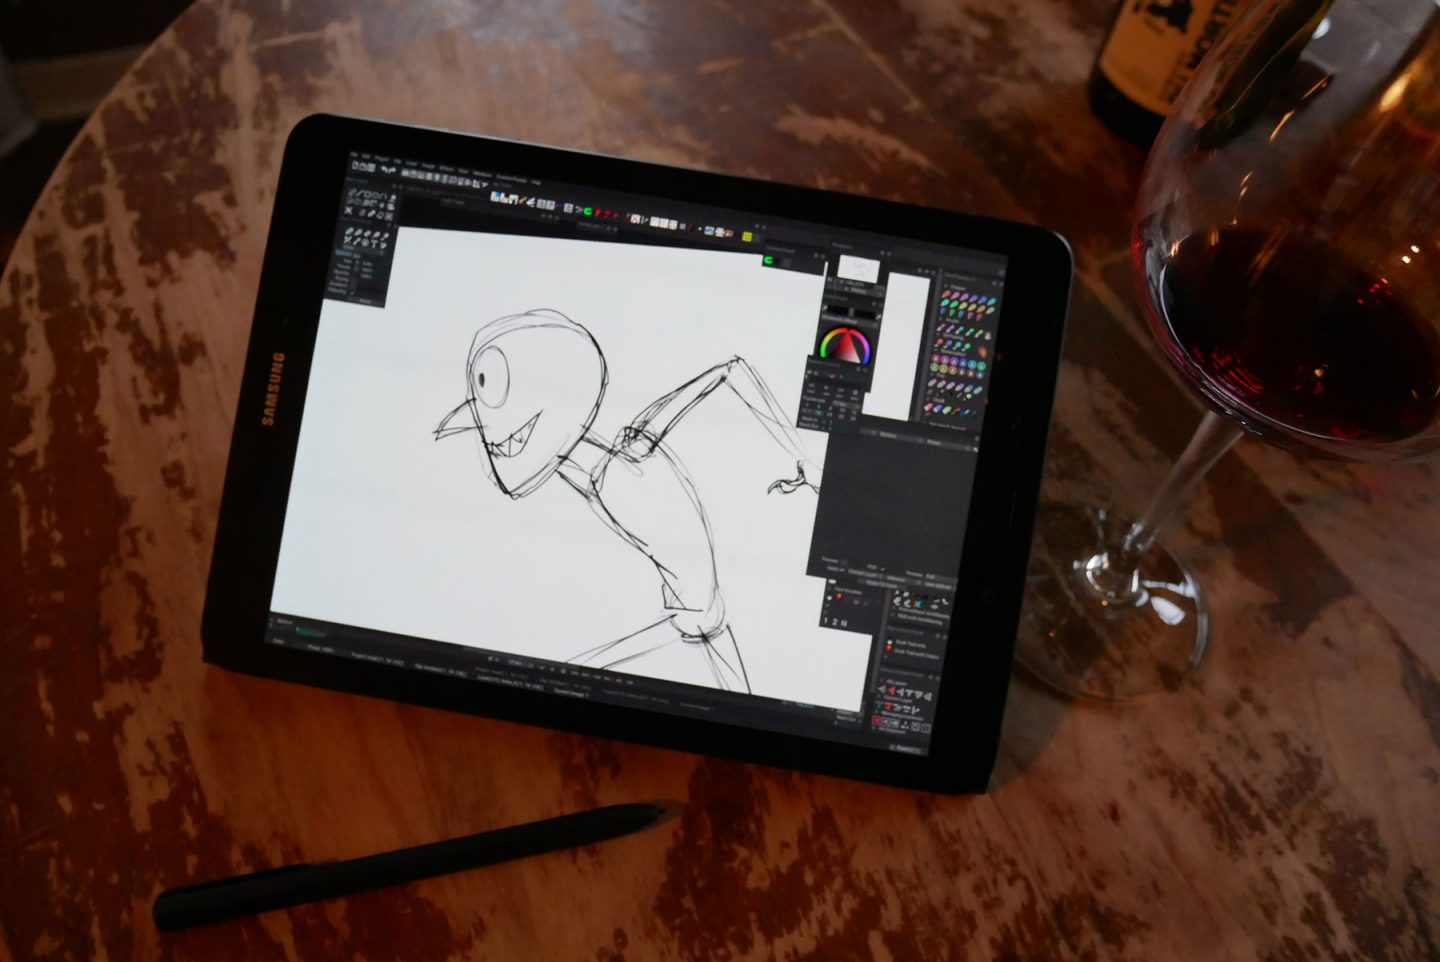 TVPaint is now available for Android users.